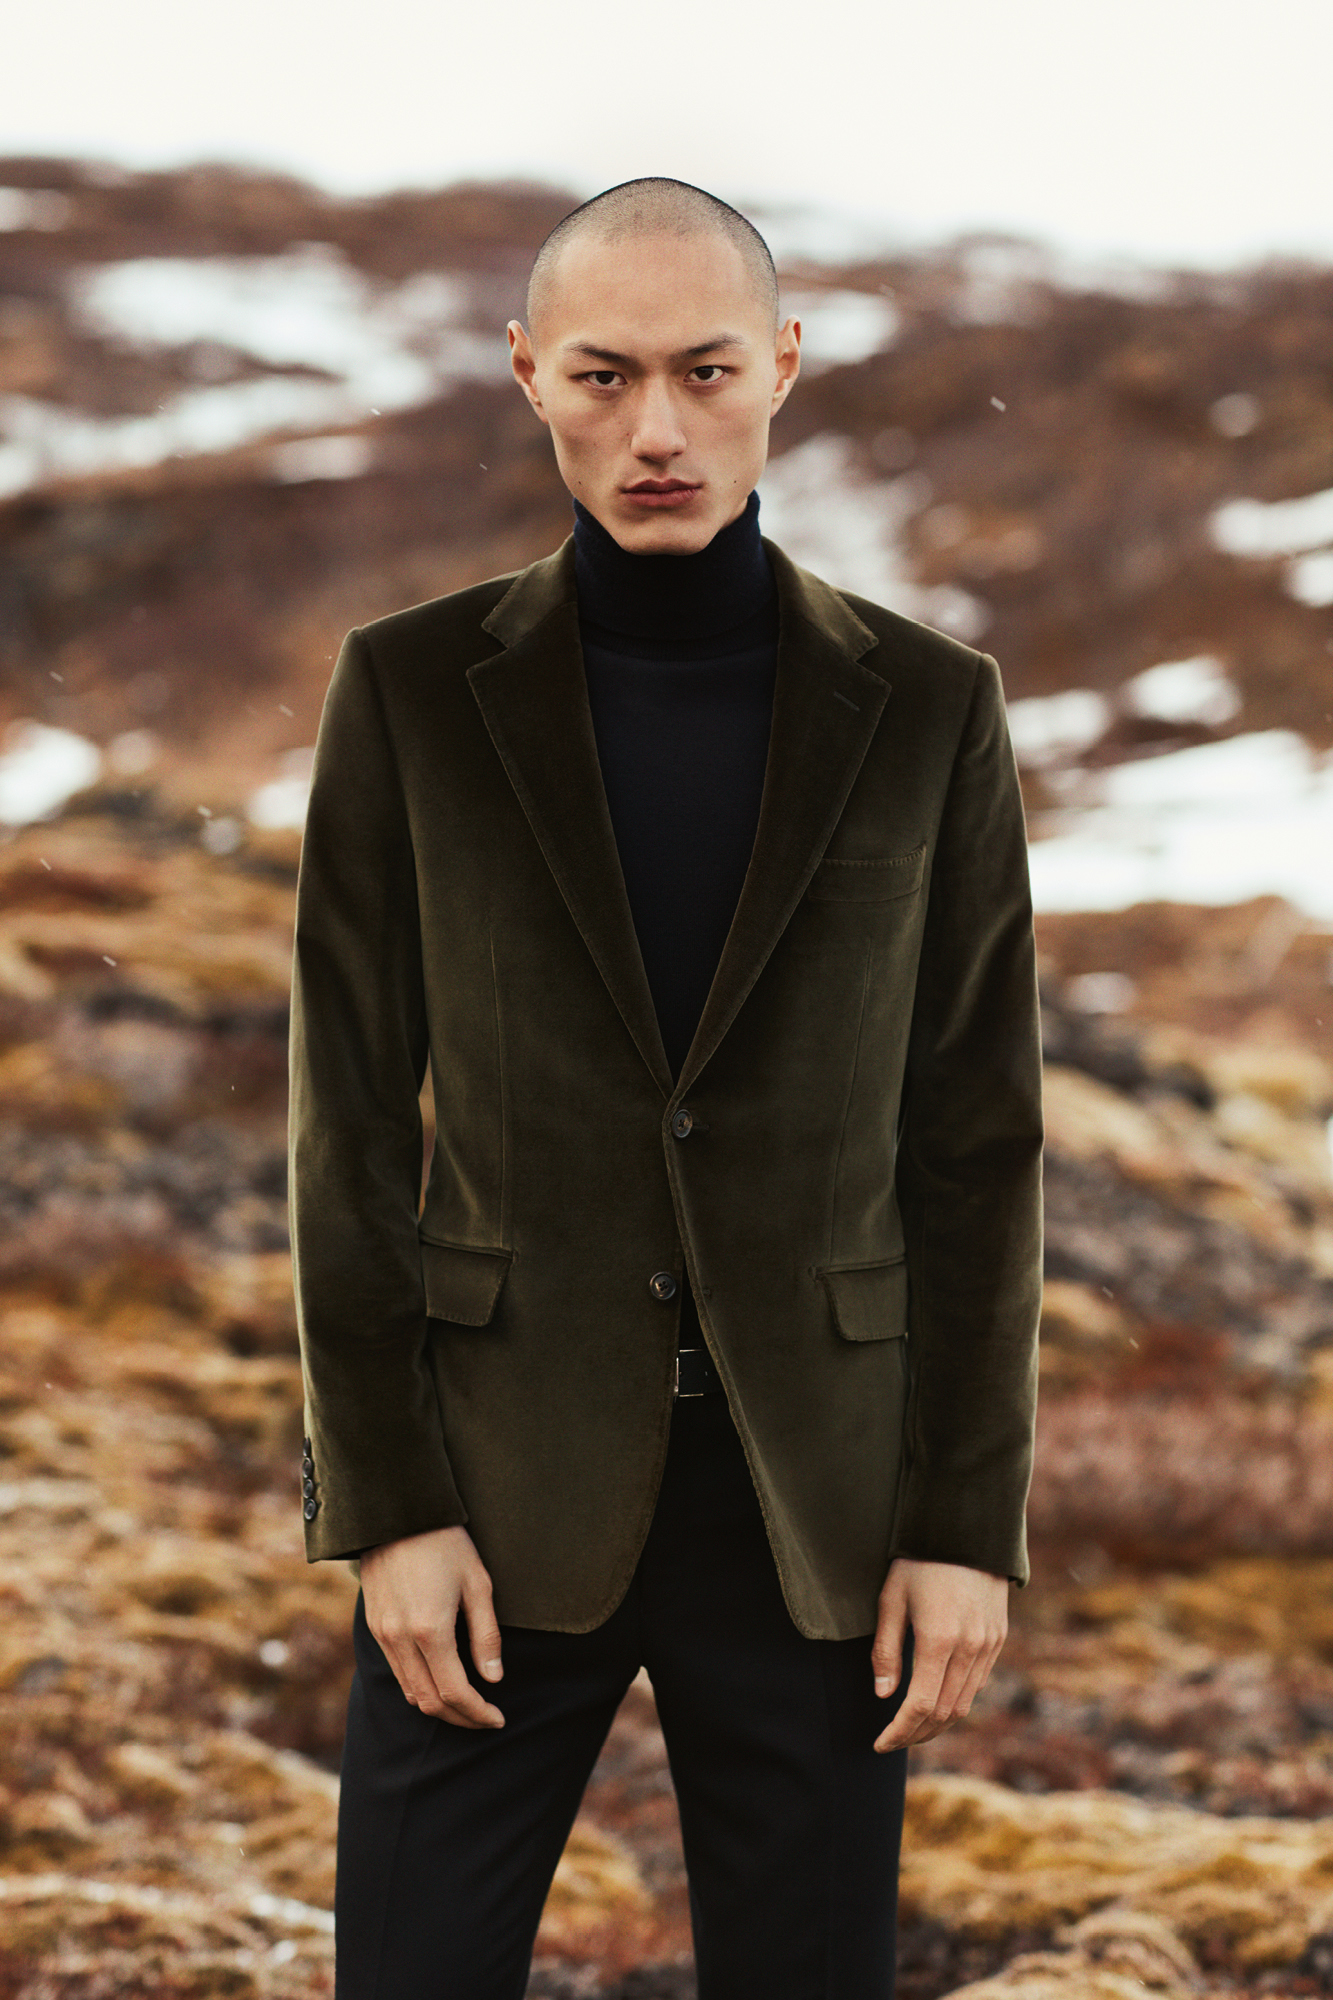 From velvet dinner jackets to refined layering, Savile Row tailor Gieves & Hawkes has winter dressing all wrapped up.